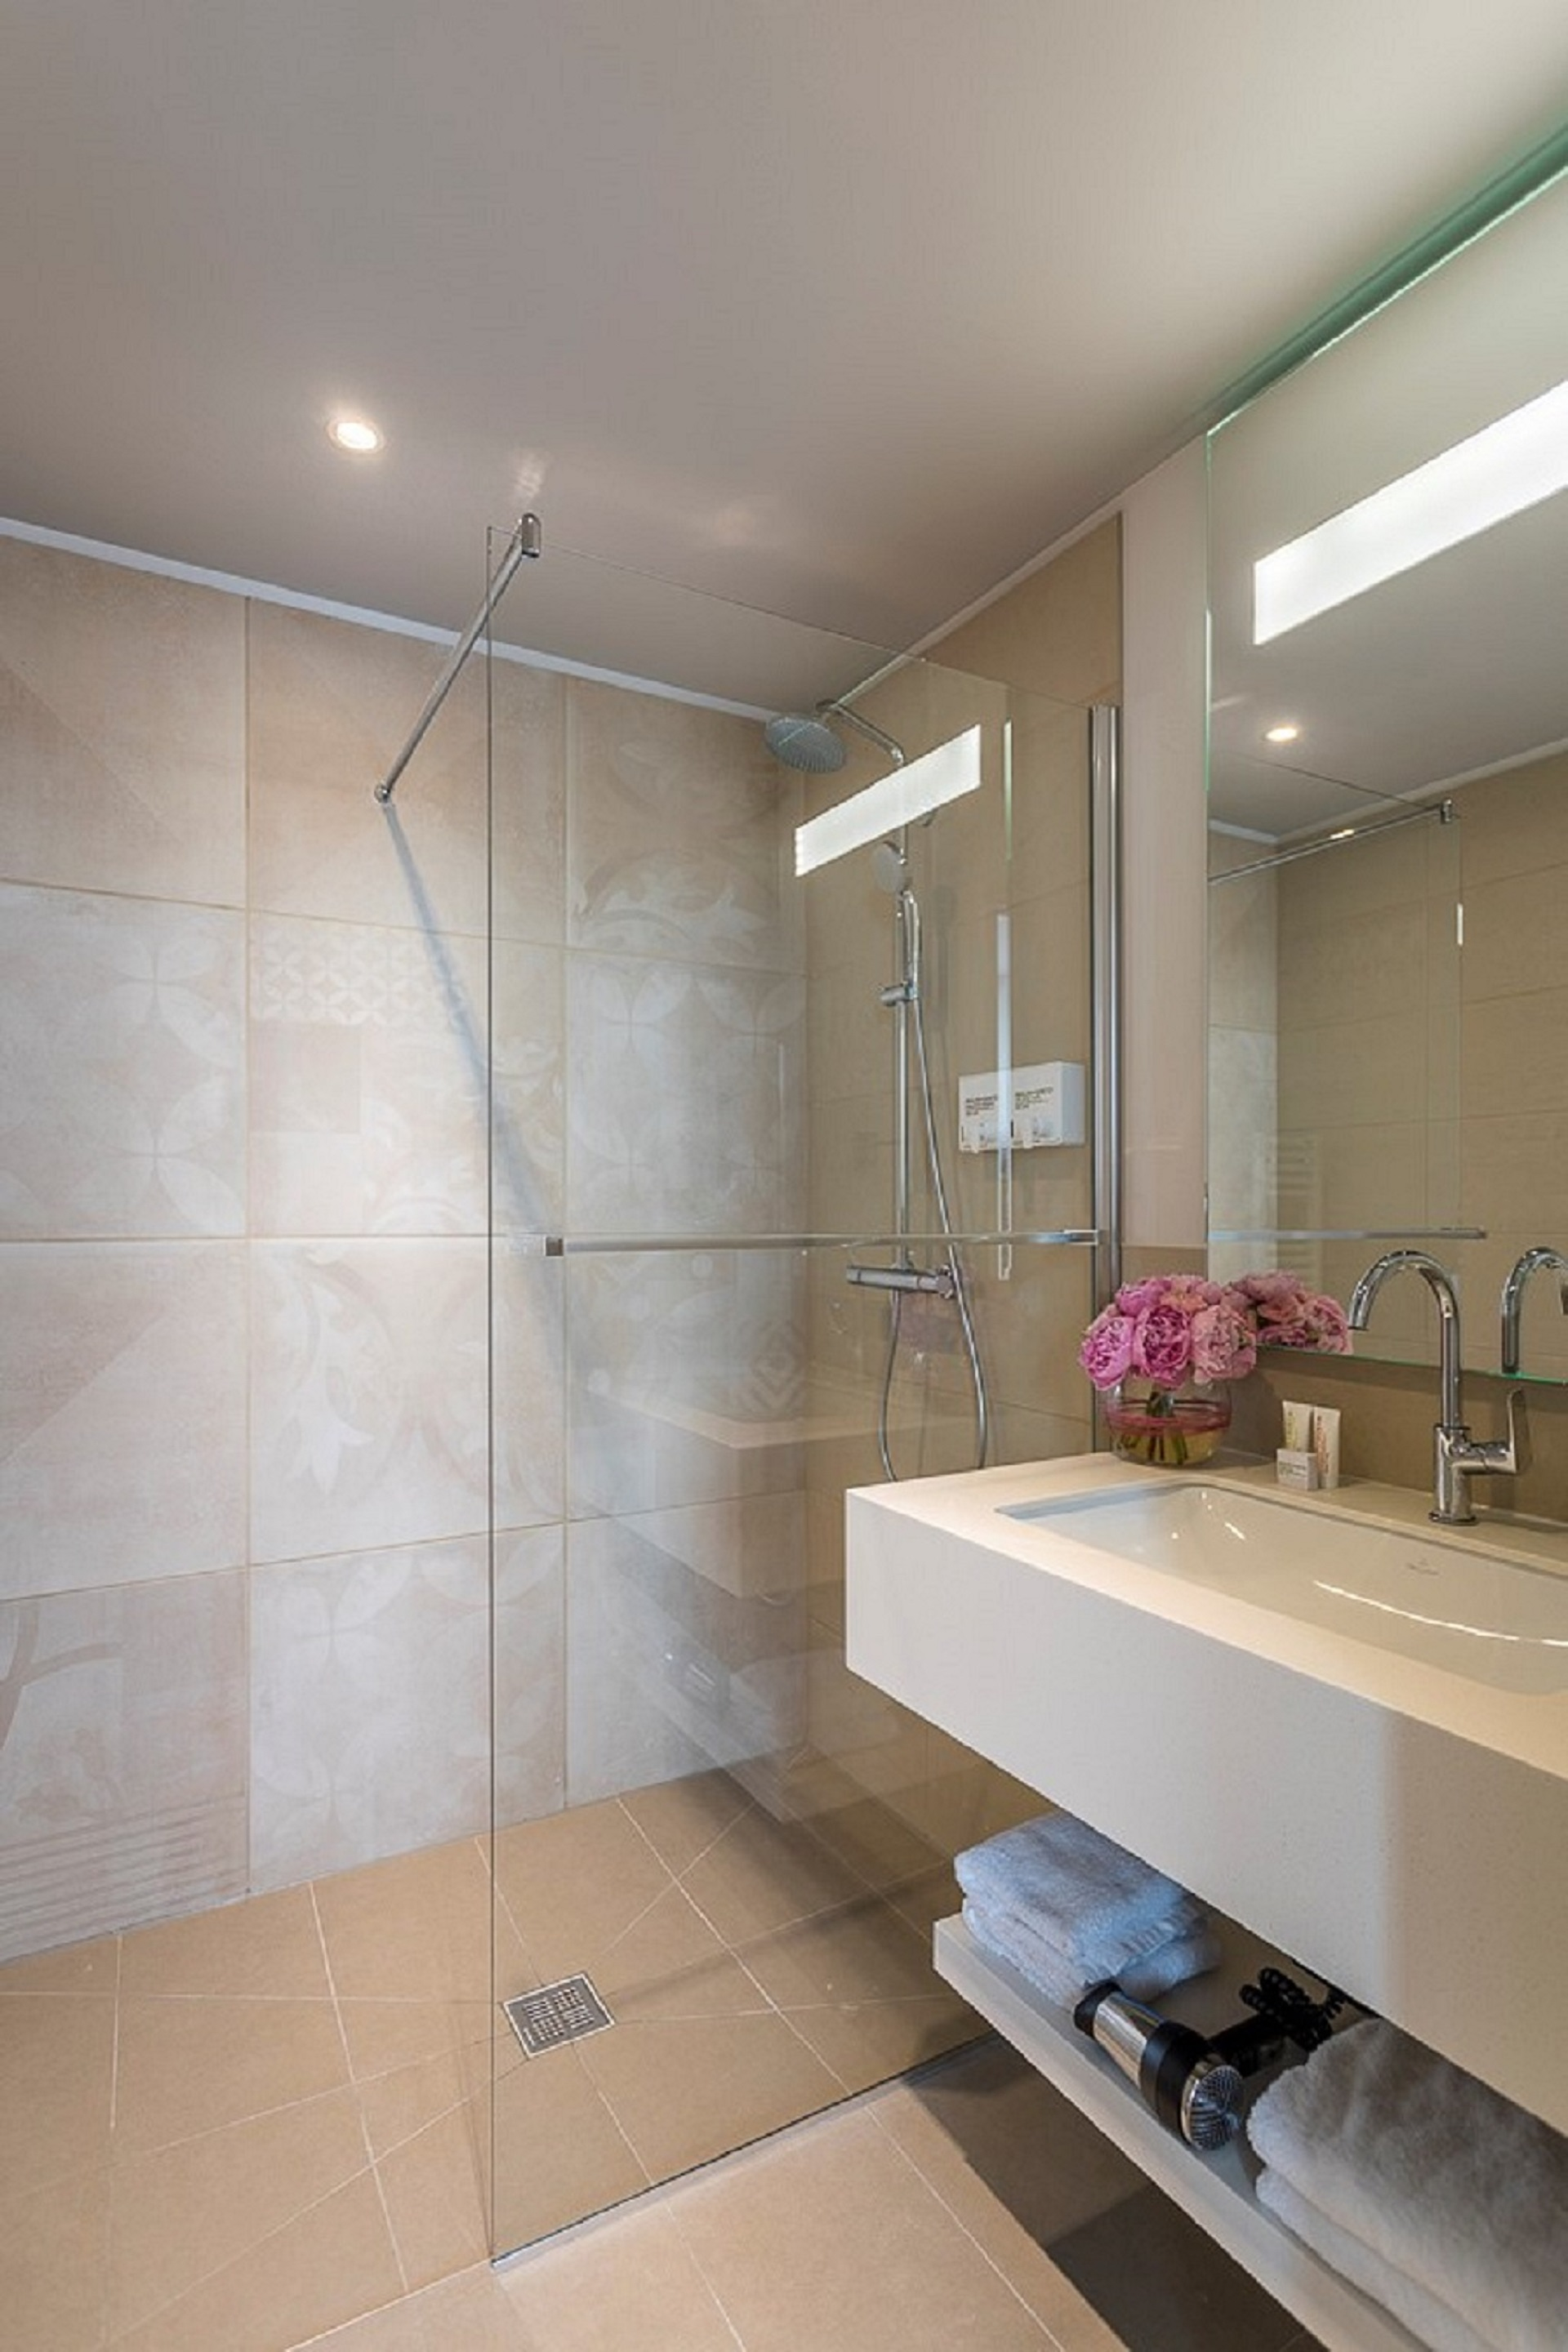 https://www.hotelsbyday.com/_data/default-hotel_image/4/22399/studio-deluxe-dusche.jpg